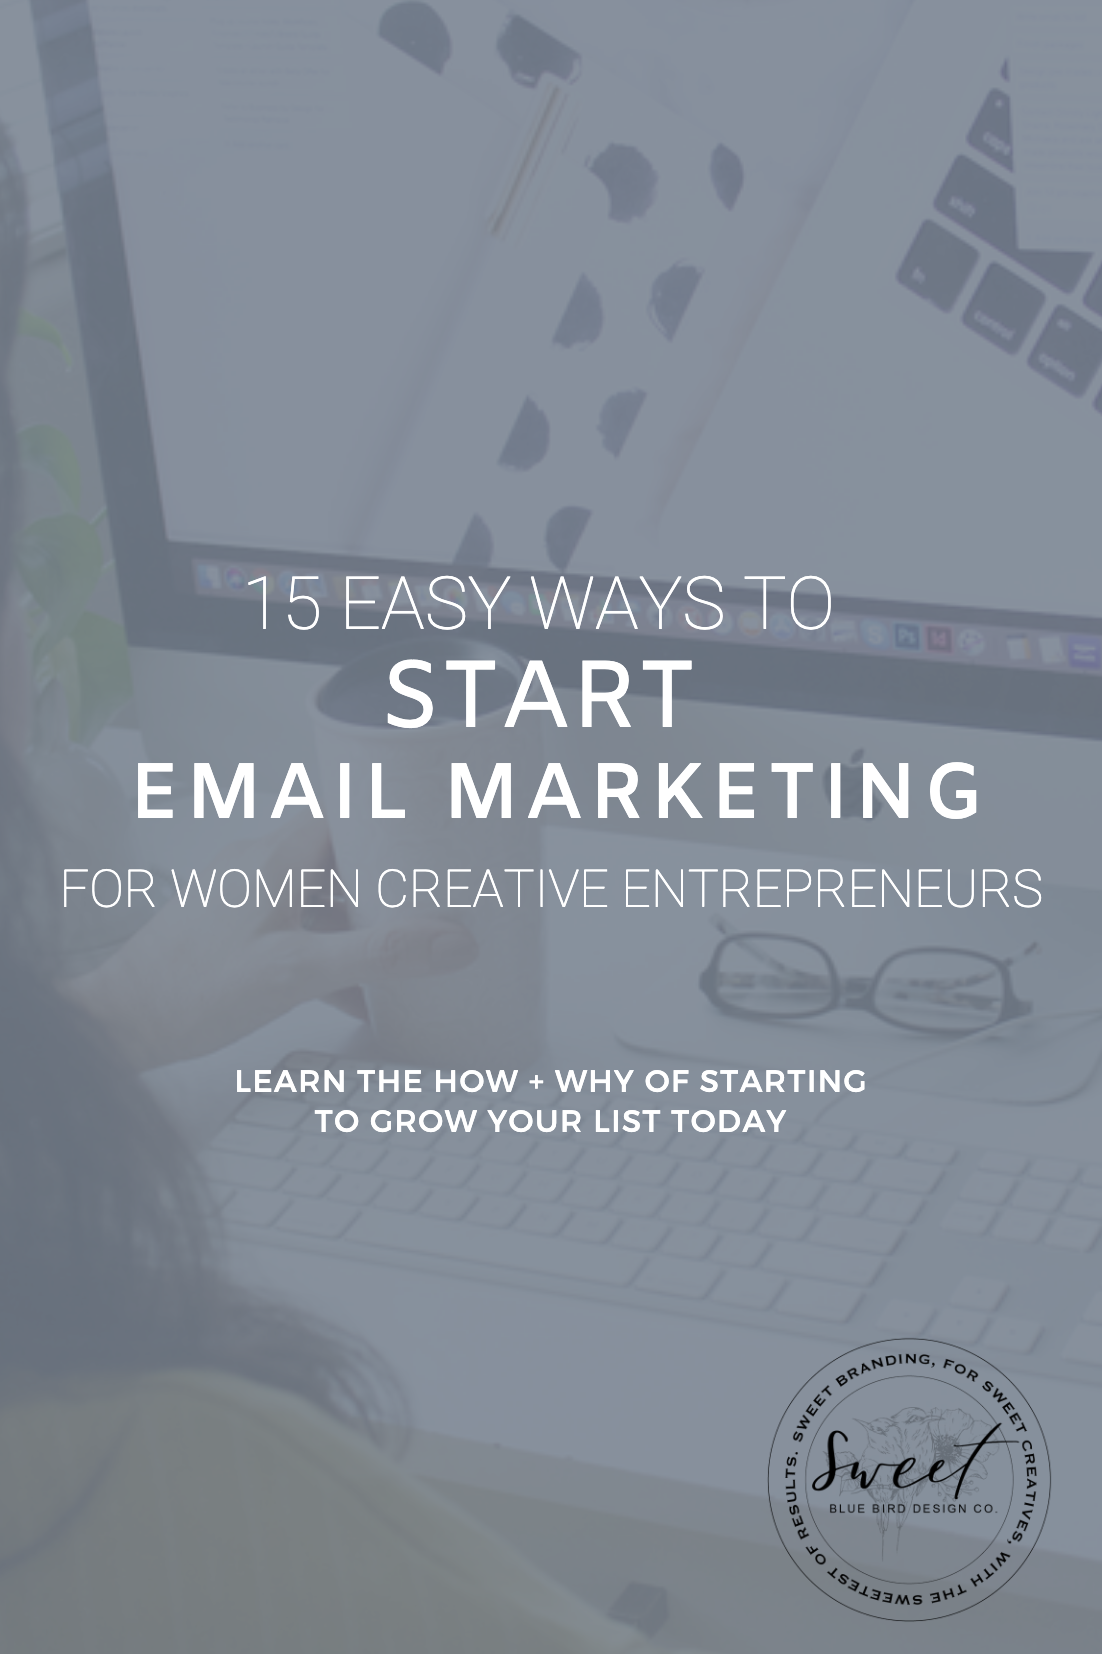 Email-Marketing-Tips-For-Creative-Entrepreneurs.png